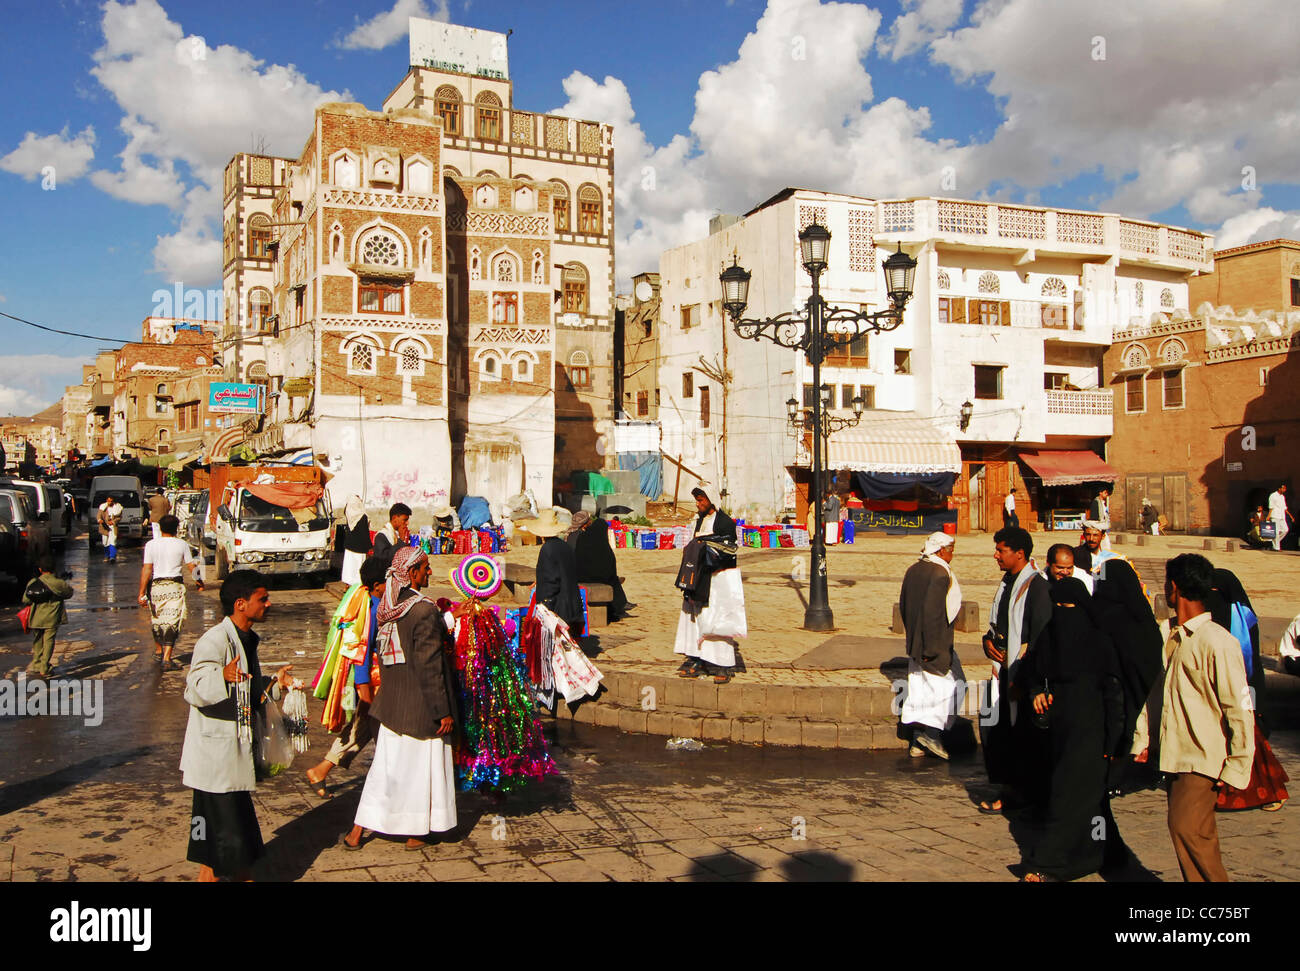 Yemen, Sanaa, busy market street with hawker holding articles for sale, group of people walking on street - Stock Image